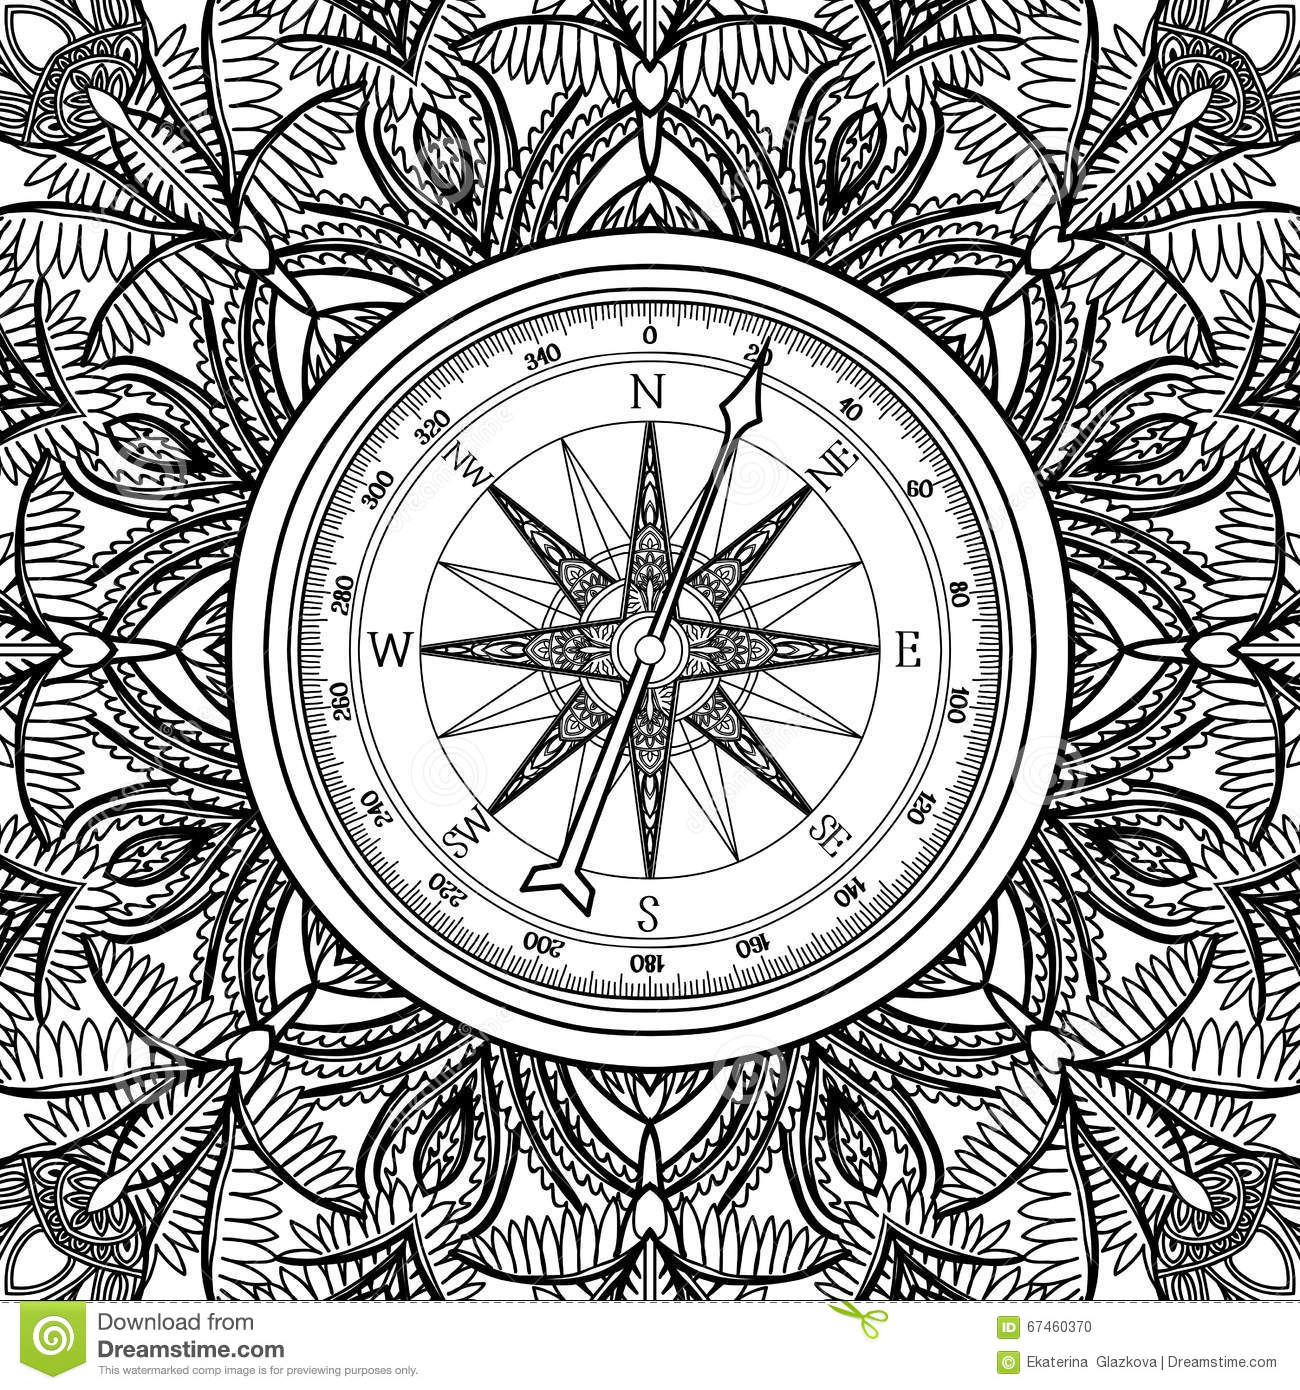 Graphic Wind Rose Compass Stock Vector Illustration Of